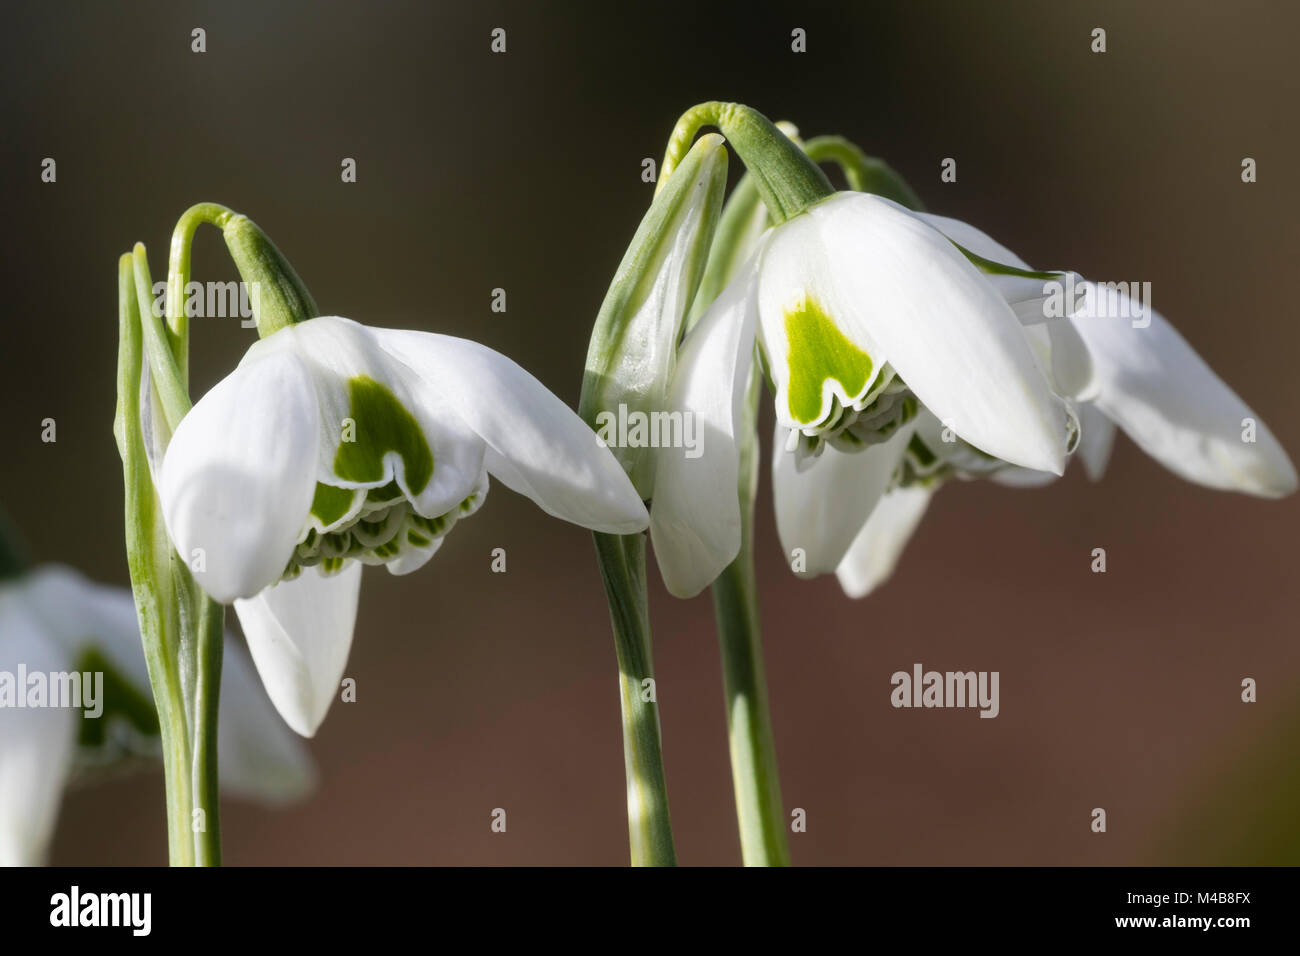 Flowers of the winter flowering double snowdrop, Galanthus 'Esther Merton' showing the doubling of the inner - Stock Image